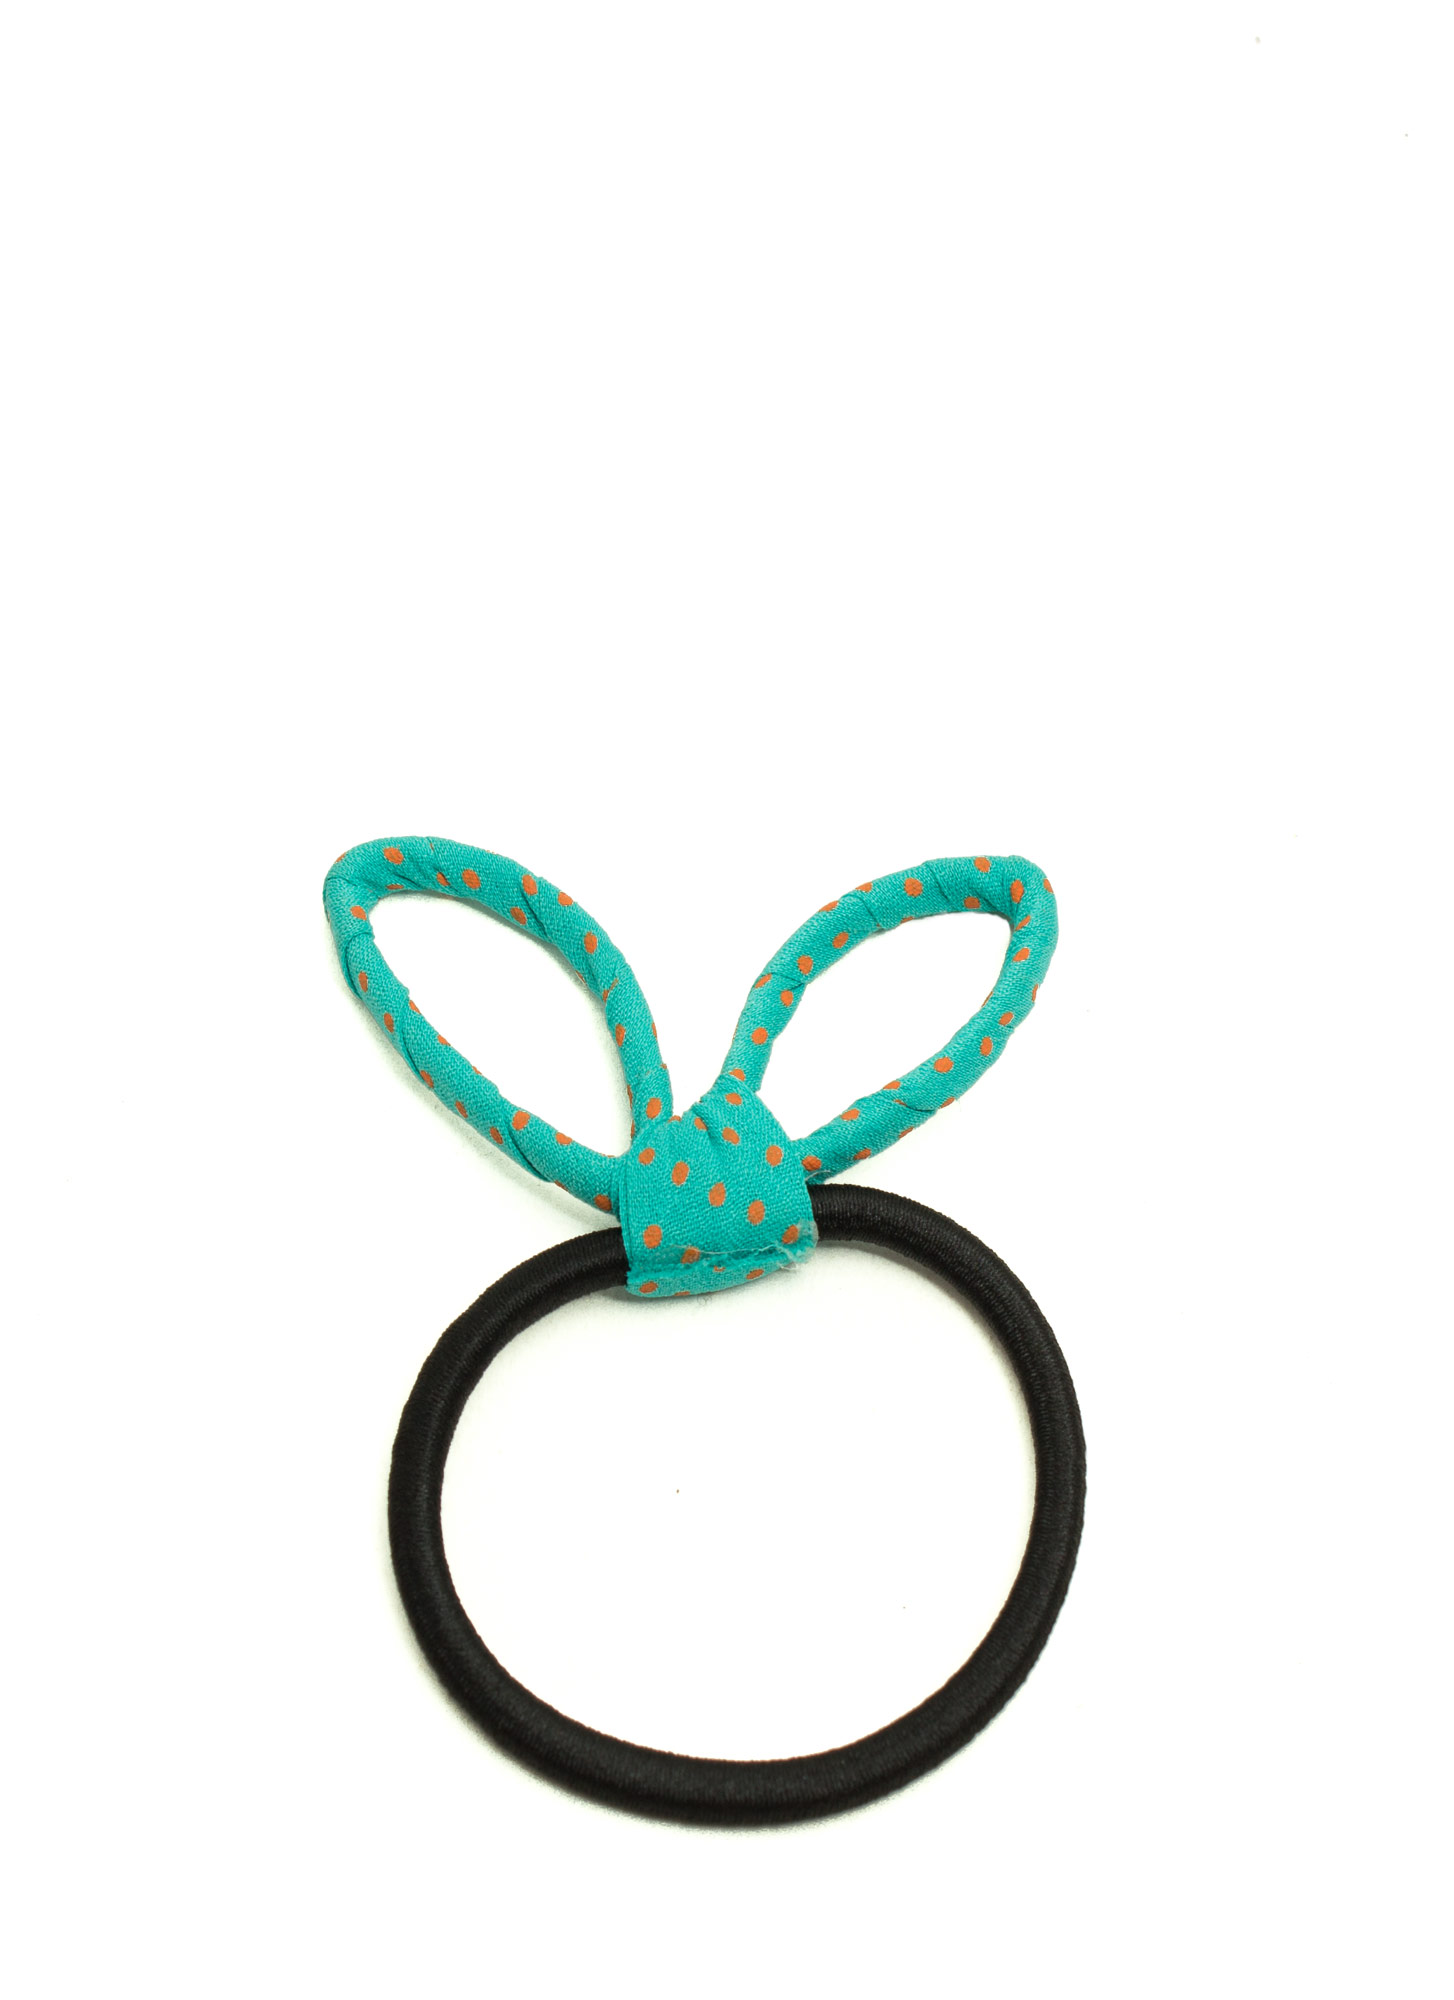 Polka Dot Bunny Ear Hair Tie TEAL  (Final Sale)